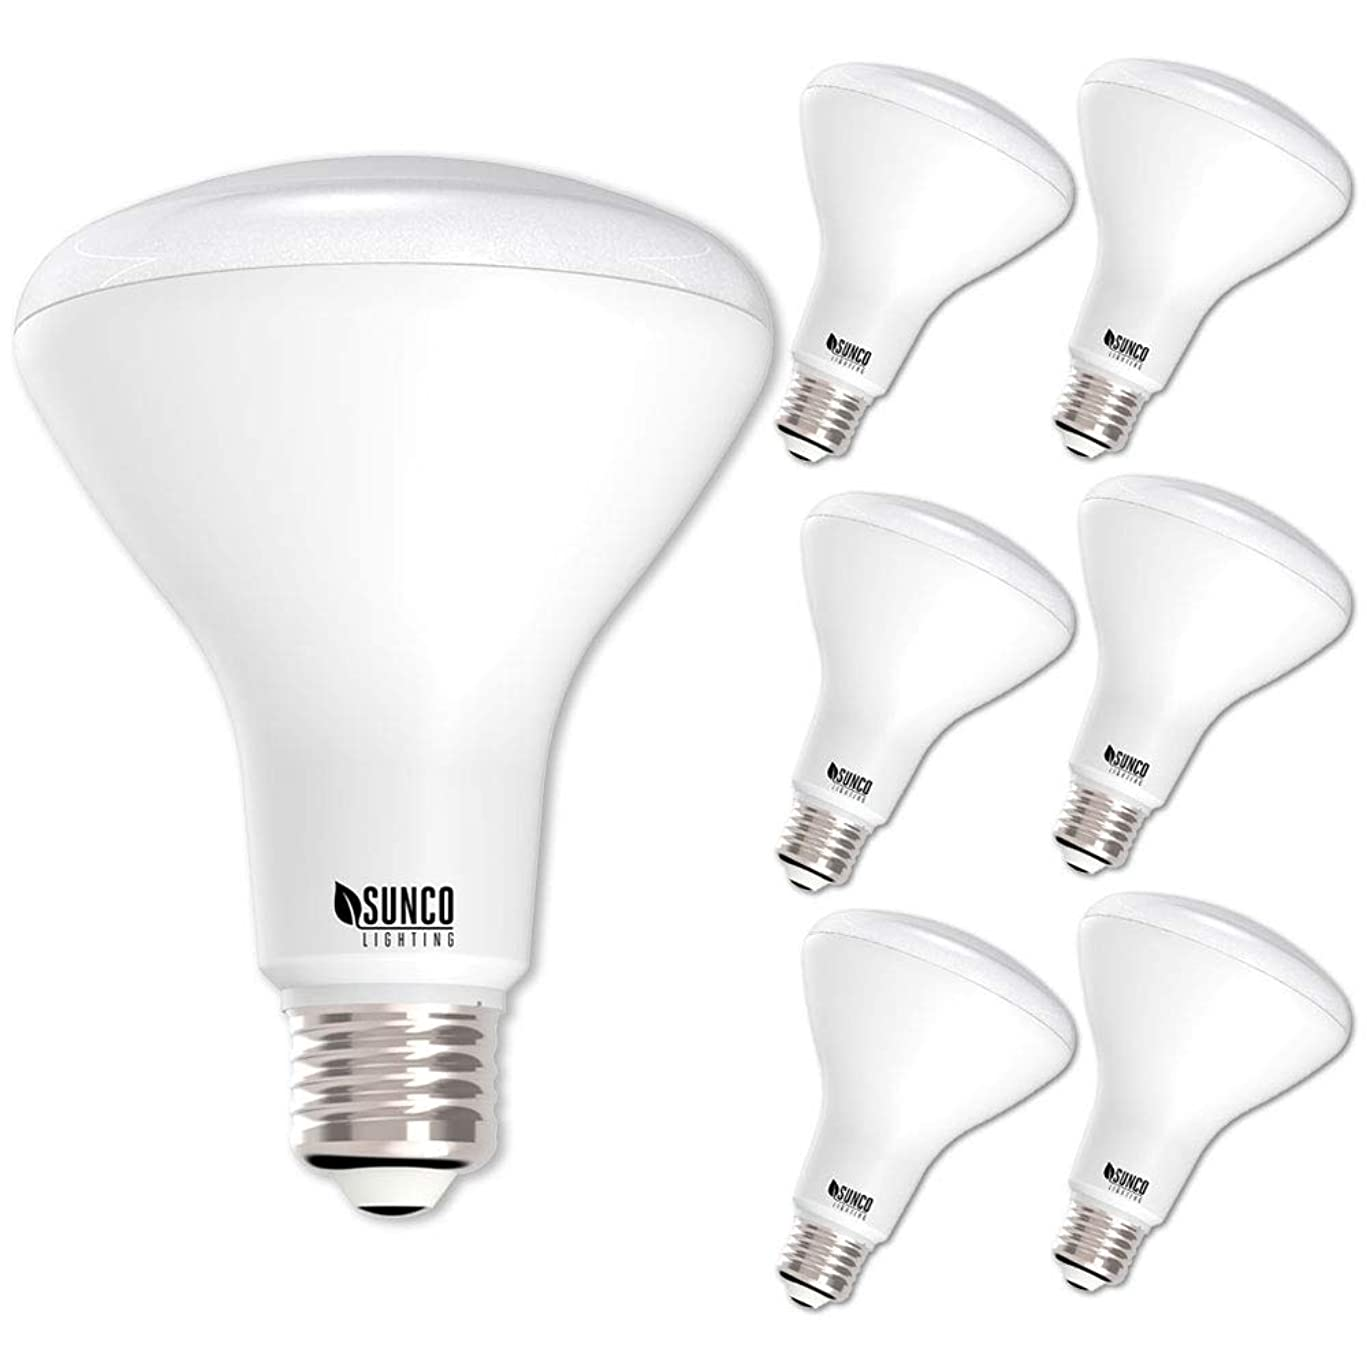 Sunco Lighting 6 Pack BR30 LED Bulb 11W=65W, 3000K Warm White, 850 LM, E26 Base, Dimmable, Indoor/Outdoor Flood Light - UL & Energy Star